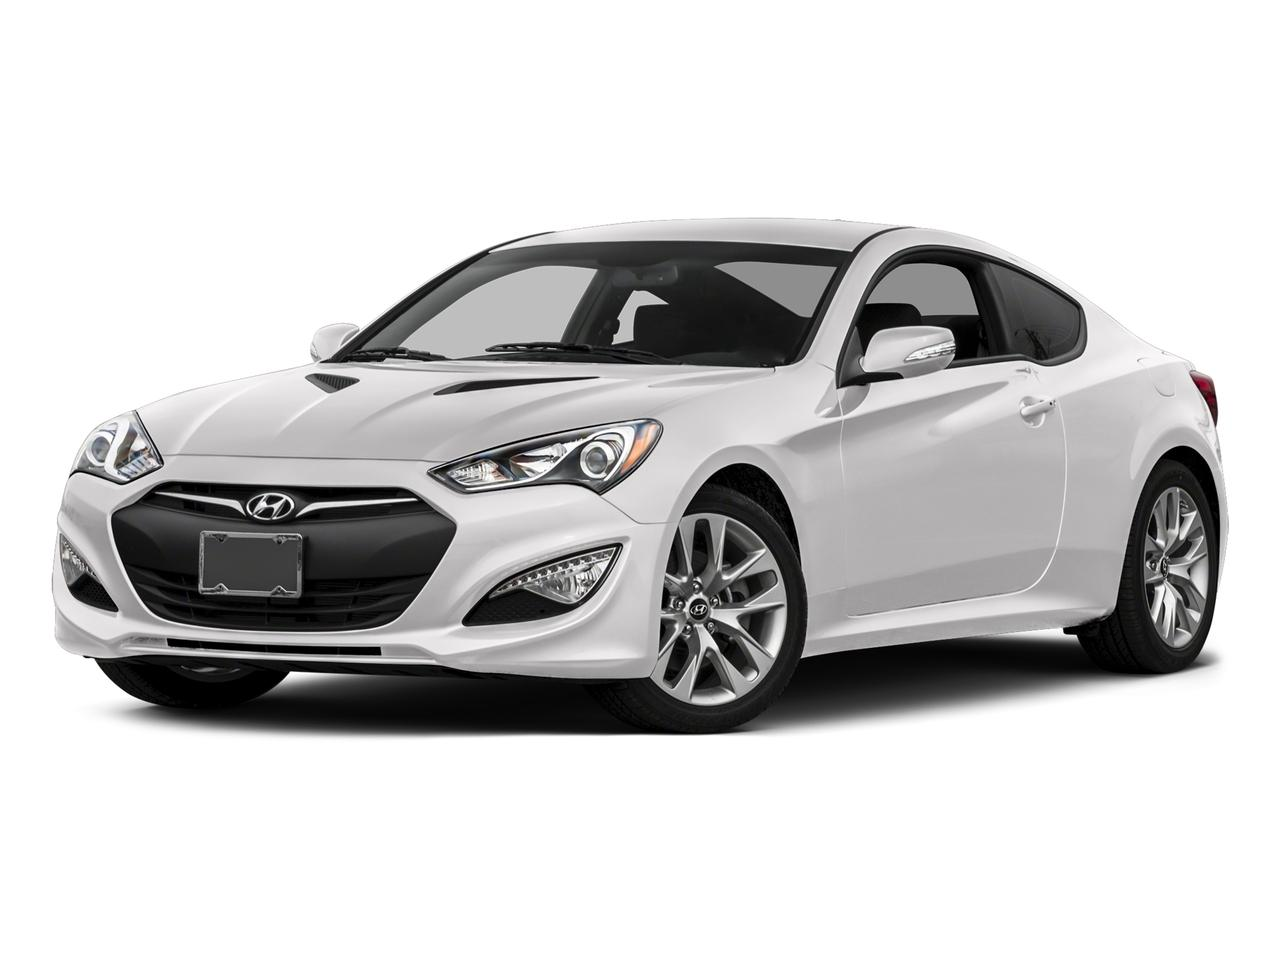 2015 Hyundai Genesis Coupe Vehicle Photo in Peoria, IL 61615